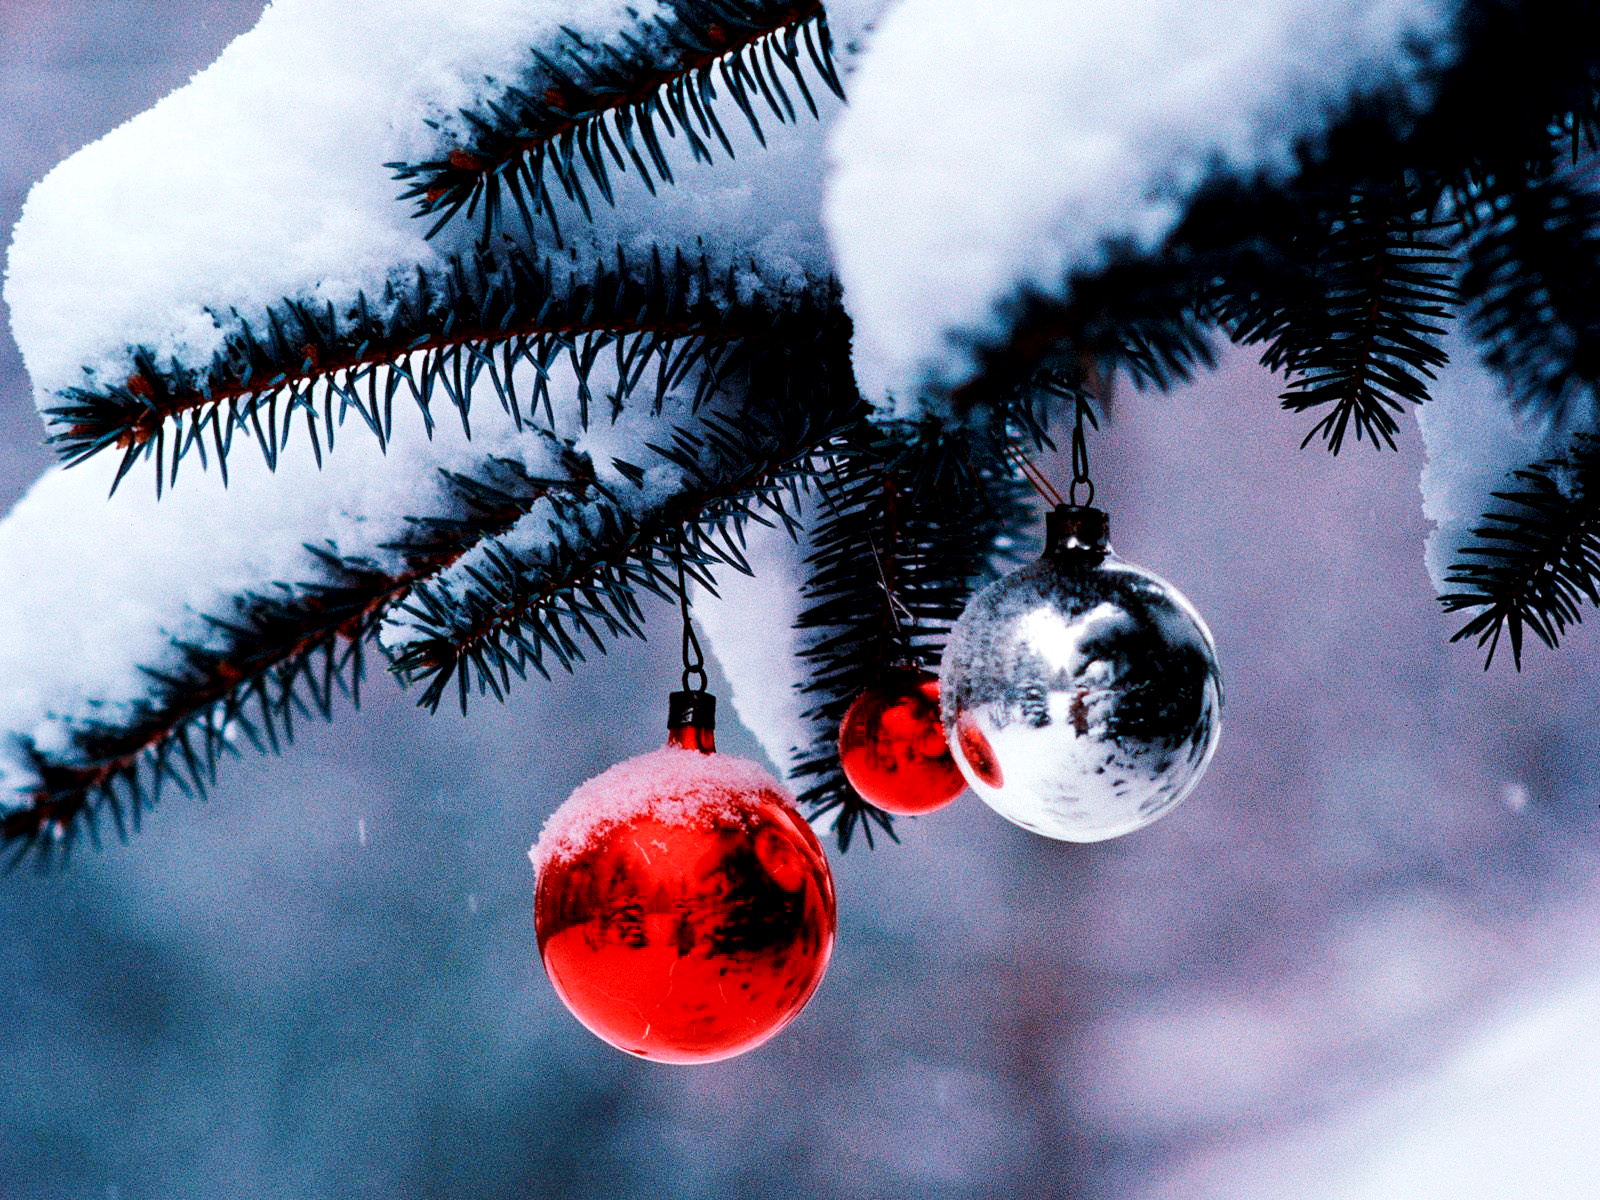 Christmas Tree HD Wallpapers Download Wallpapers in HD for your 1600x1200